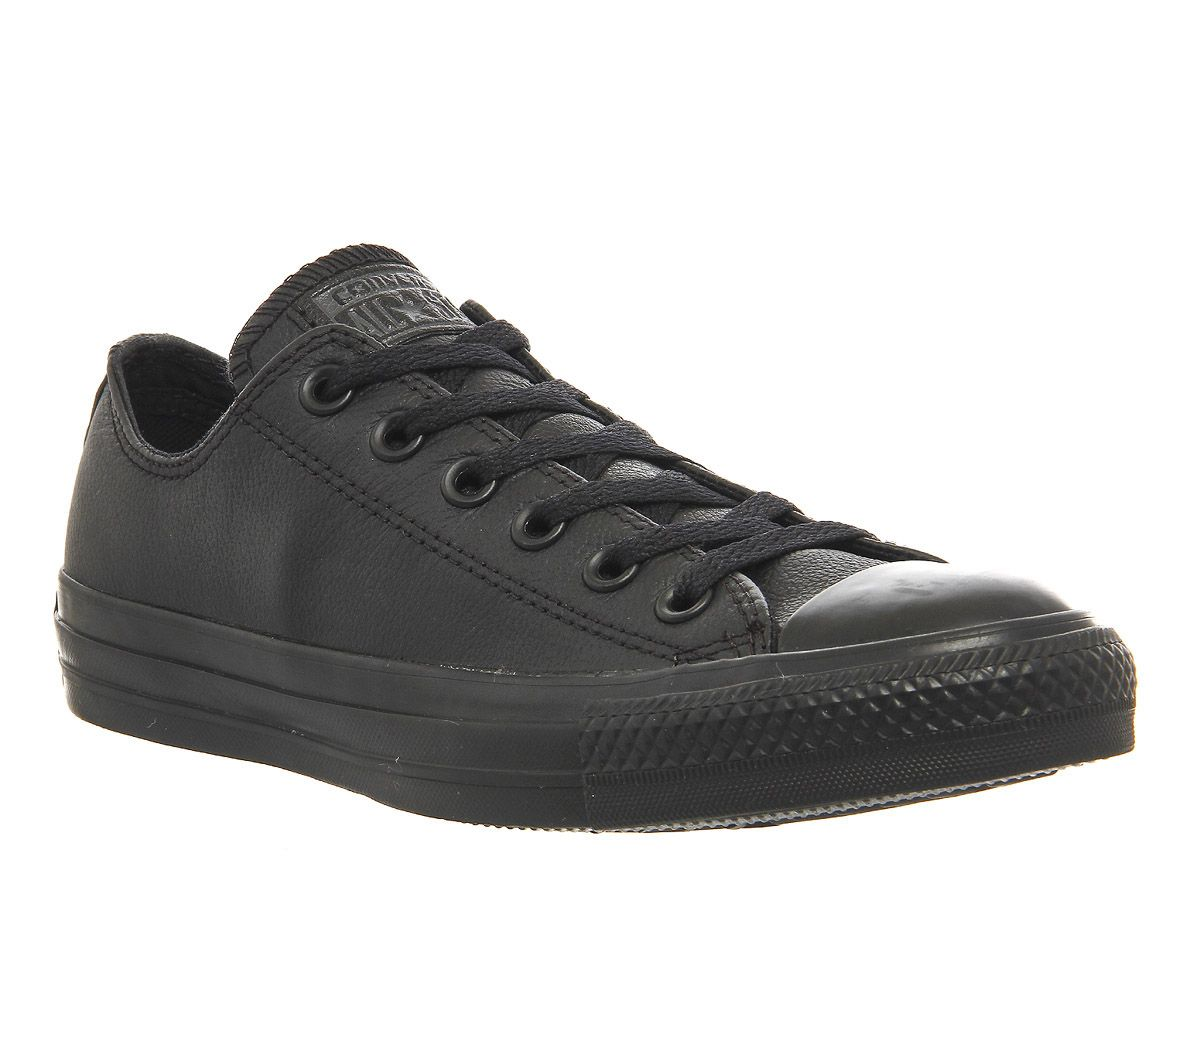 bf98a247e962 Converse All Star Low Leather Black Mono Leather - Unisex Sports